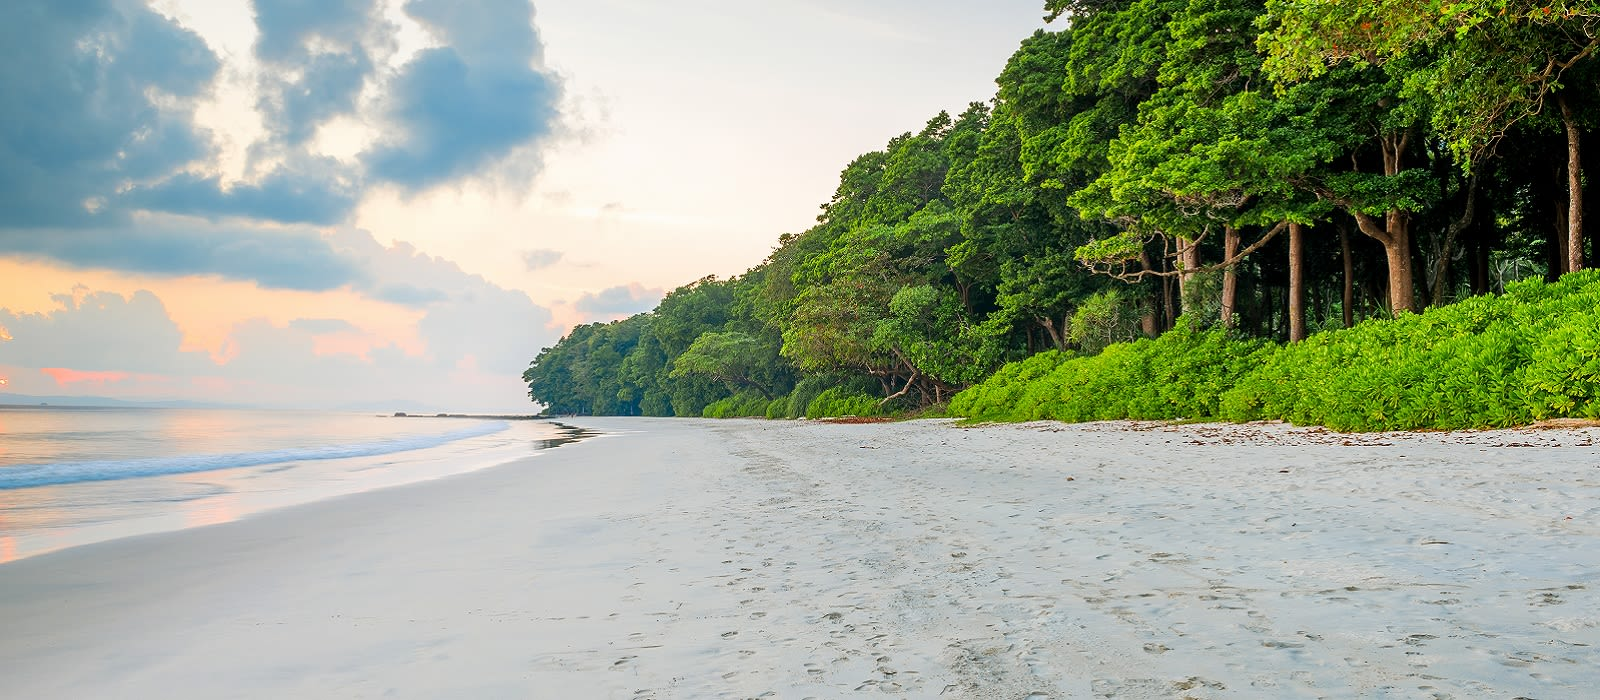 Destination Andaman Islands Islands & Beaches